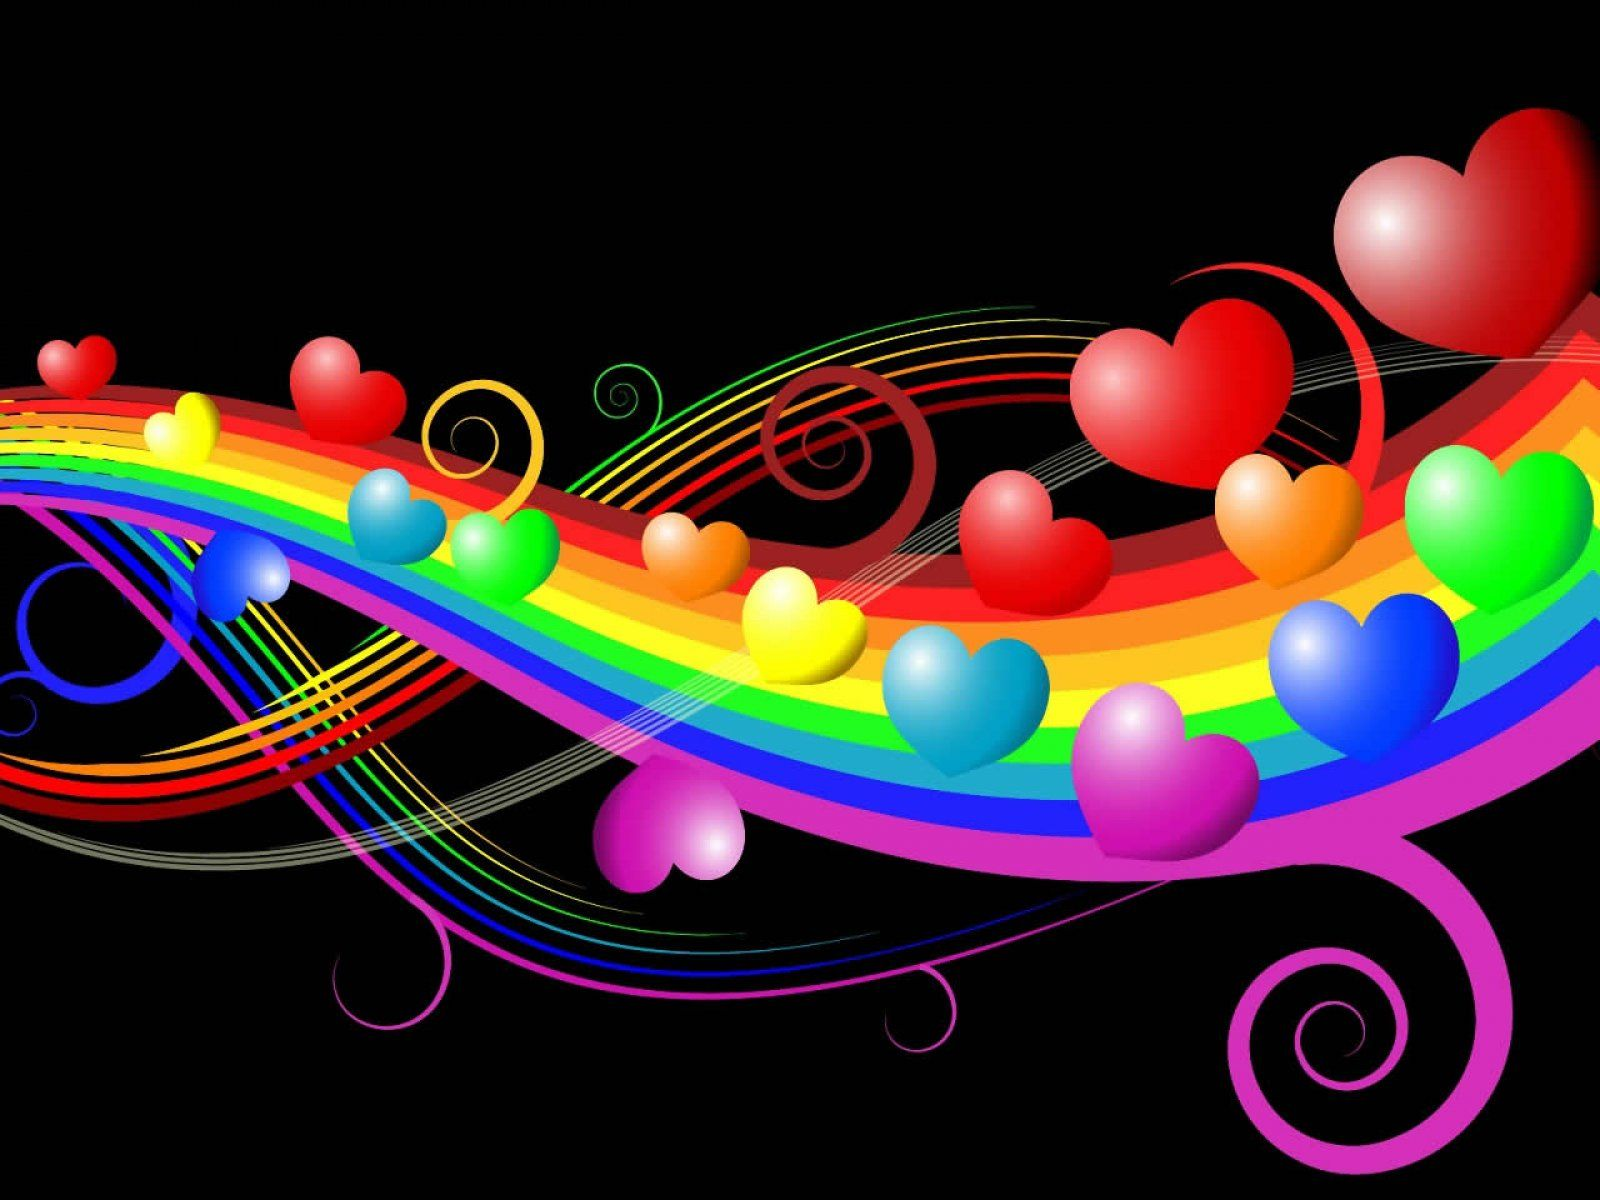 Fantastic Wallpaper Music Heart - ec84d5e1e704f3a6124b4cfb7fde98c8  Graphic_846048.jpg